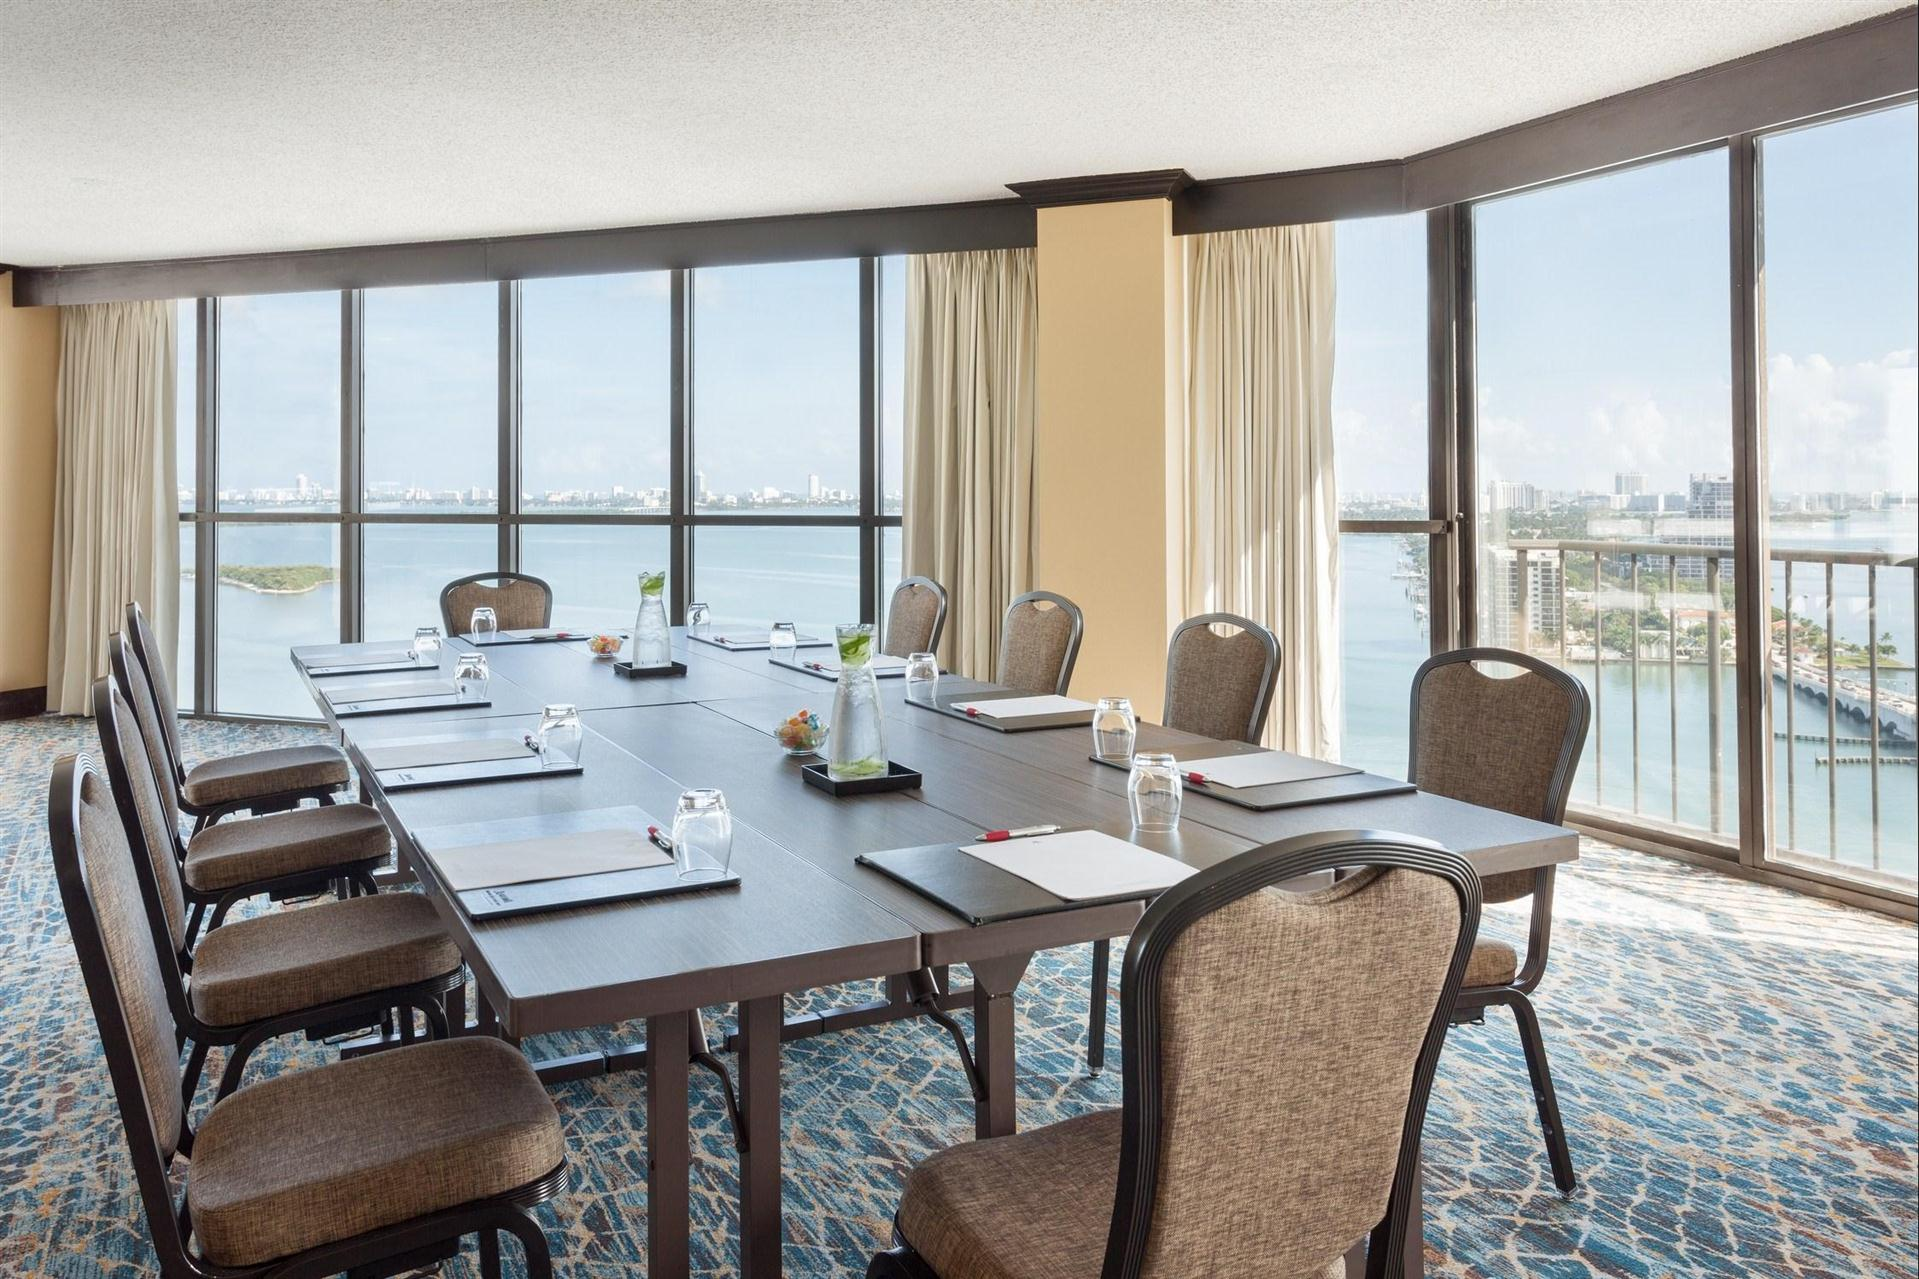 Meetings and events at Miami Marriott Biscayne Bay, Miami, FL, US on edgewater house plans, whispering pines house plans, boca raton house plans, little river house plans, new york house plans, bartram springs house plans, ocean house plans,